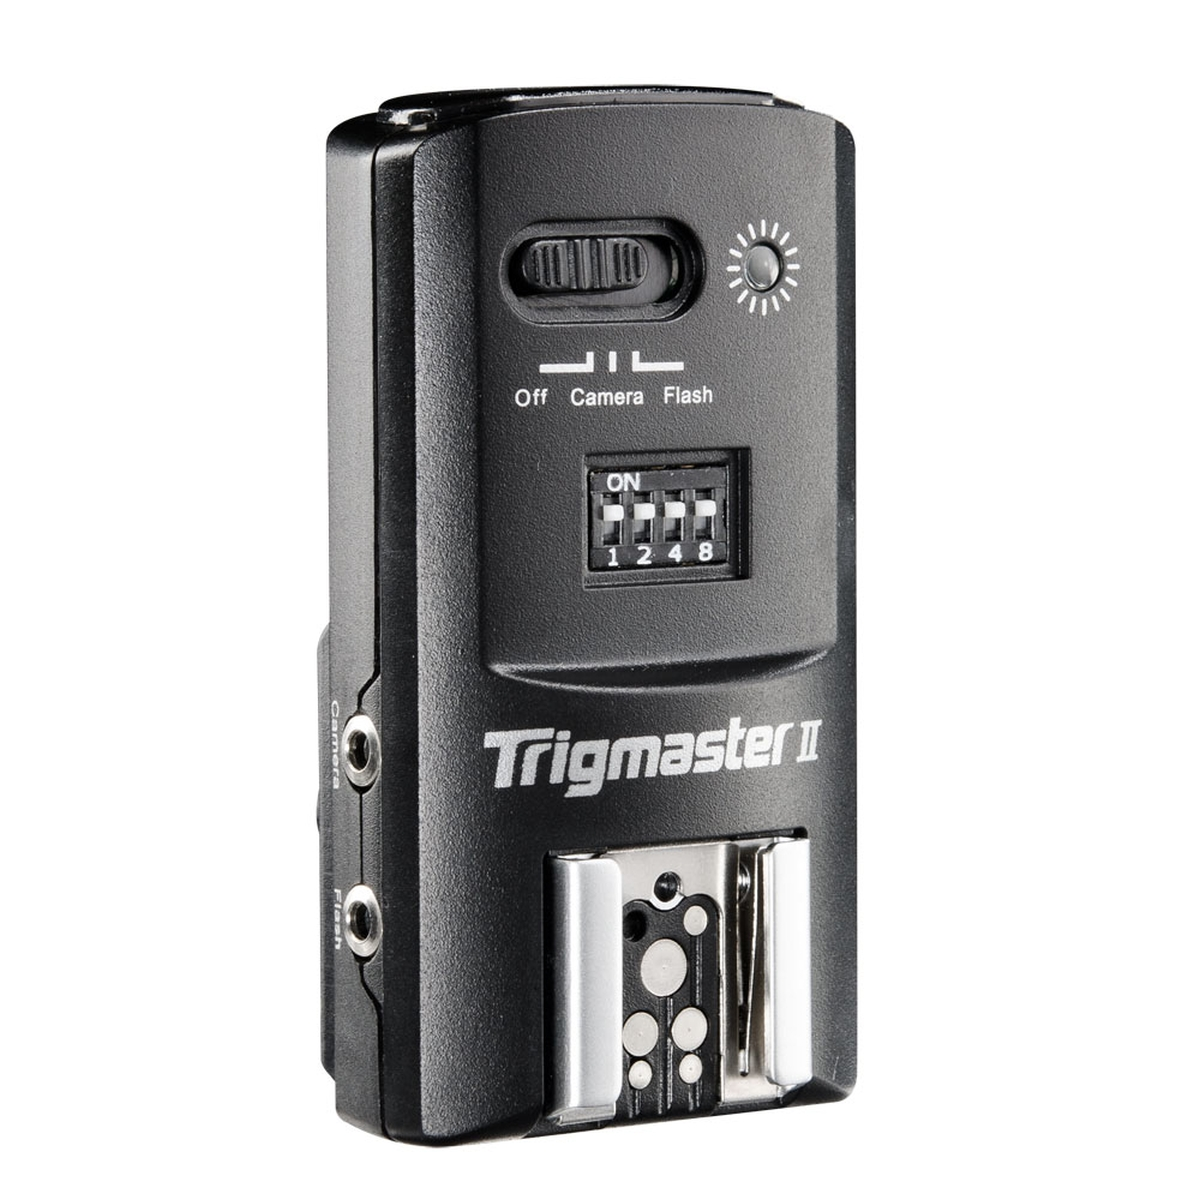 Aputure Trigmaster II 2.4G Receiver for Pentax